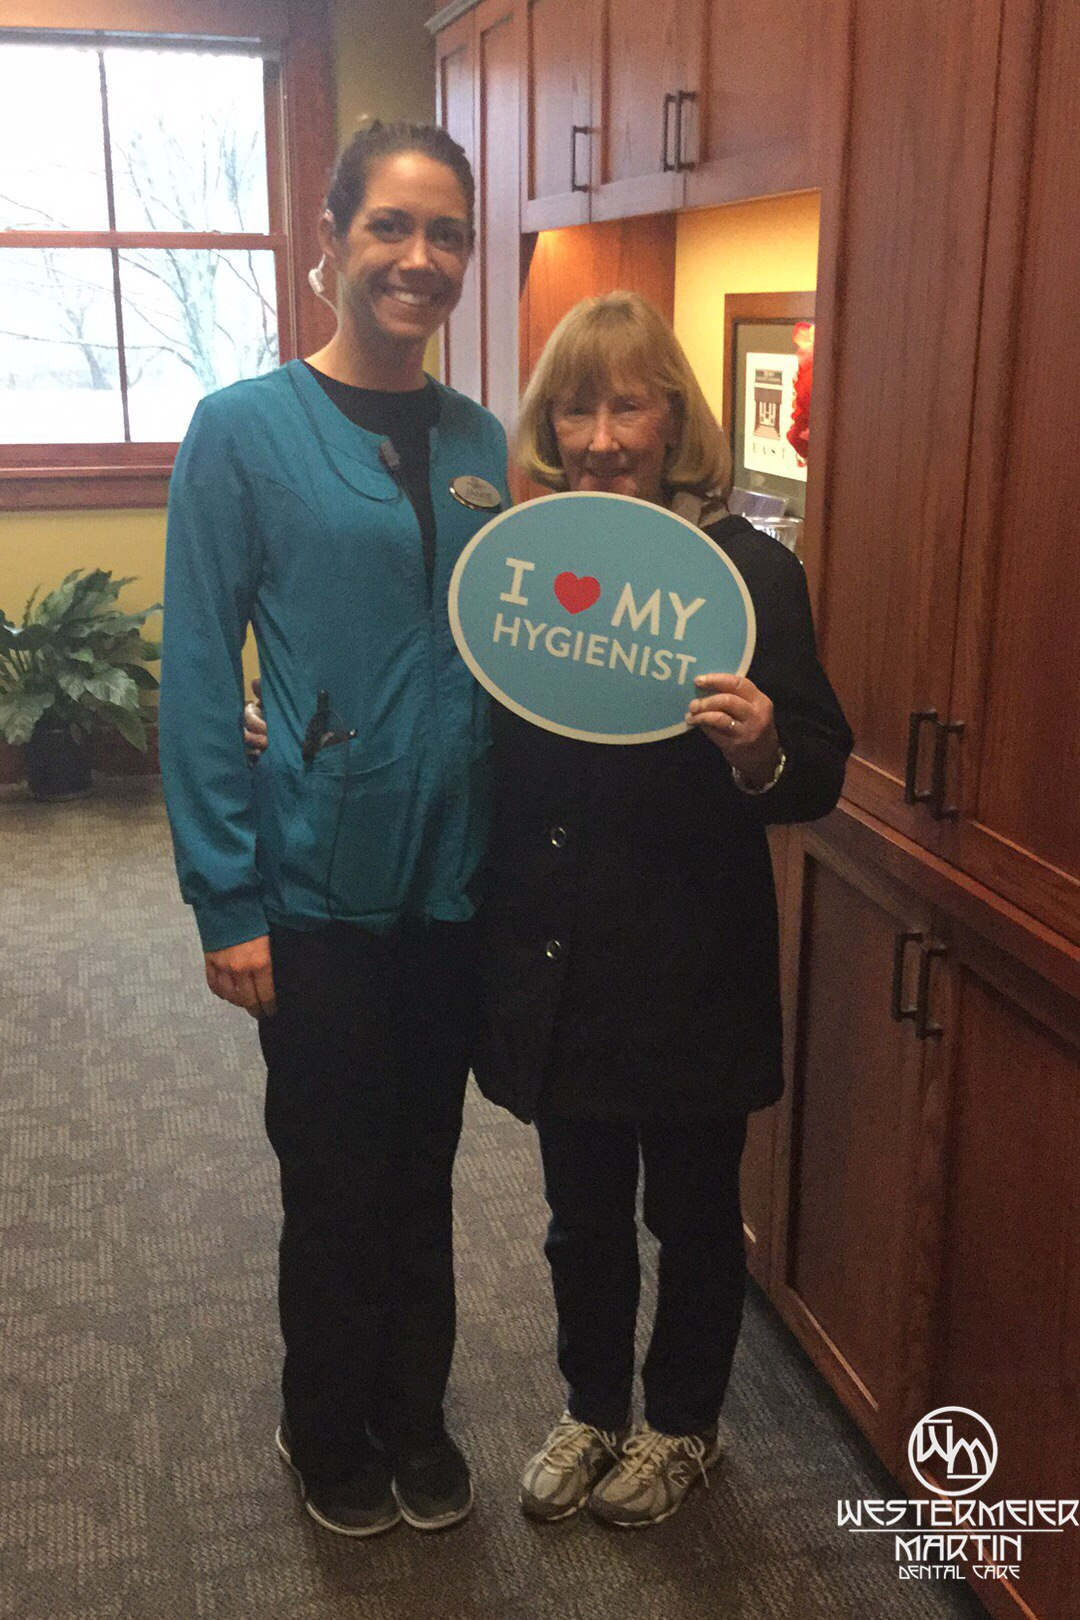 Patient holding an I heart my hygienist